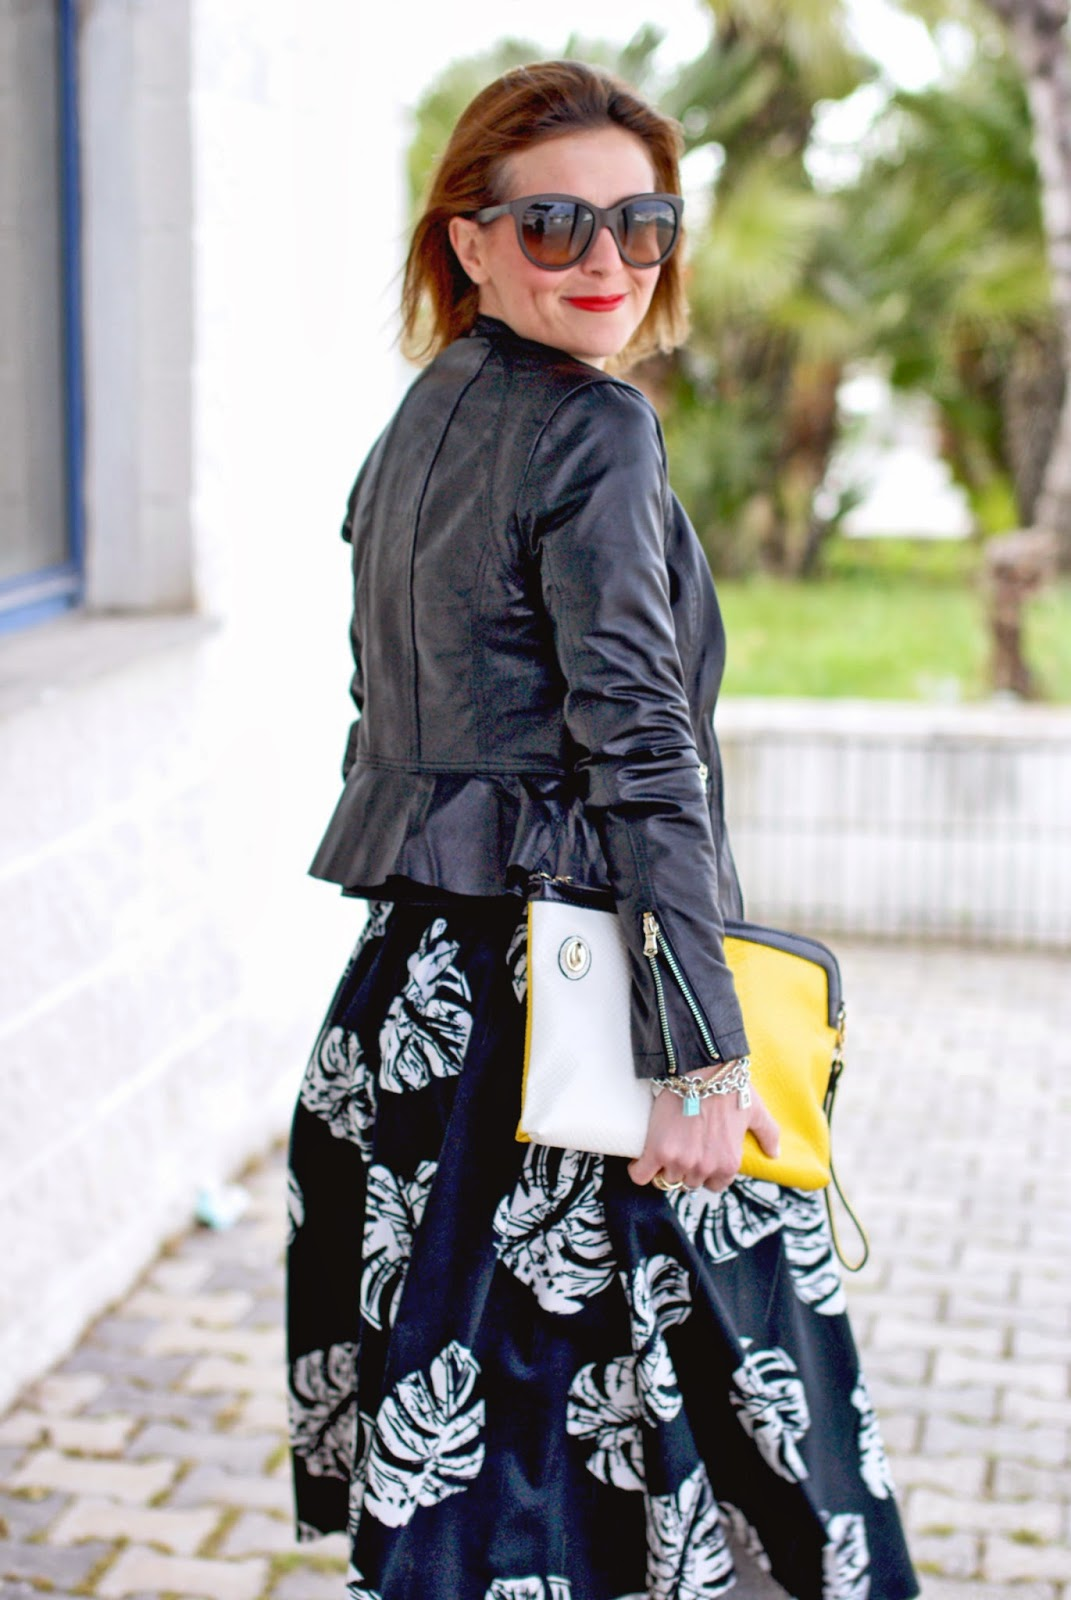 Asos leather jacket, leather peplum jacket, palm leaf print skirt, Loriblu heels, Fashion and Cookies, fashion blogger